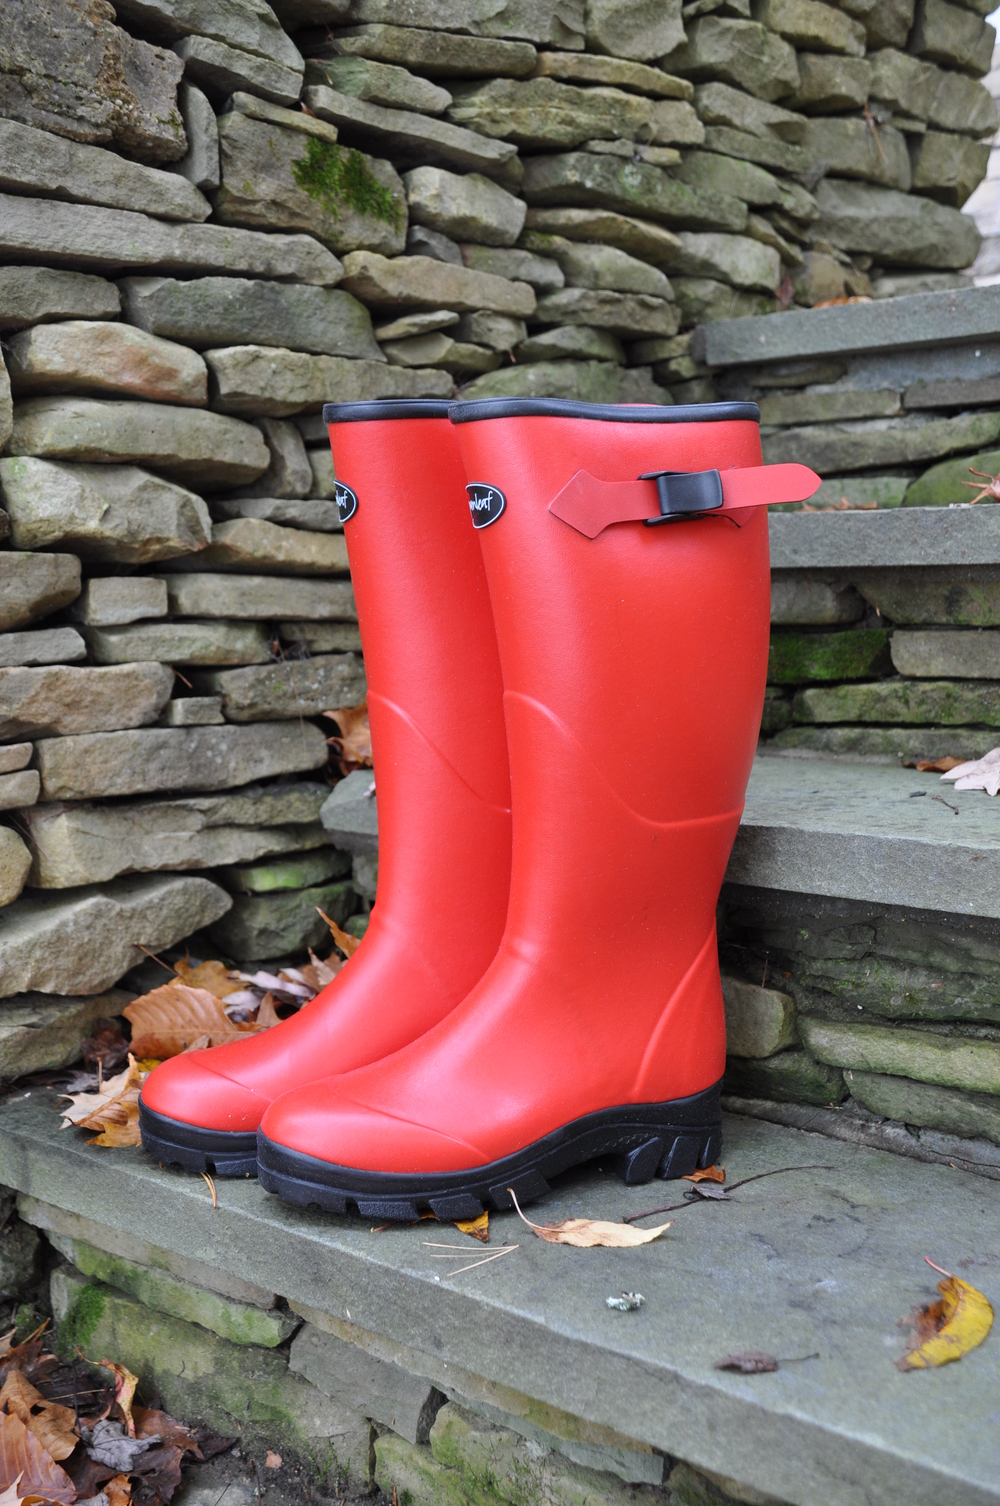 Winter Wellies: Are you Chillin' or Just Plain Cold?